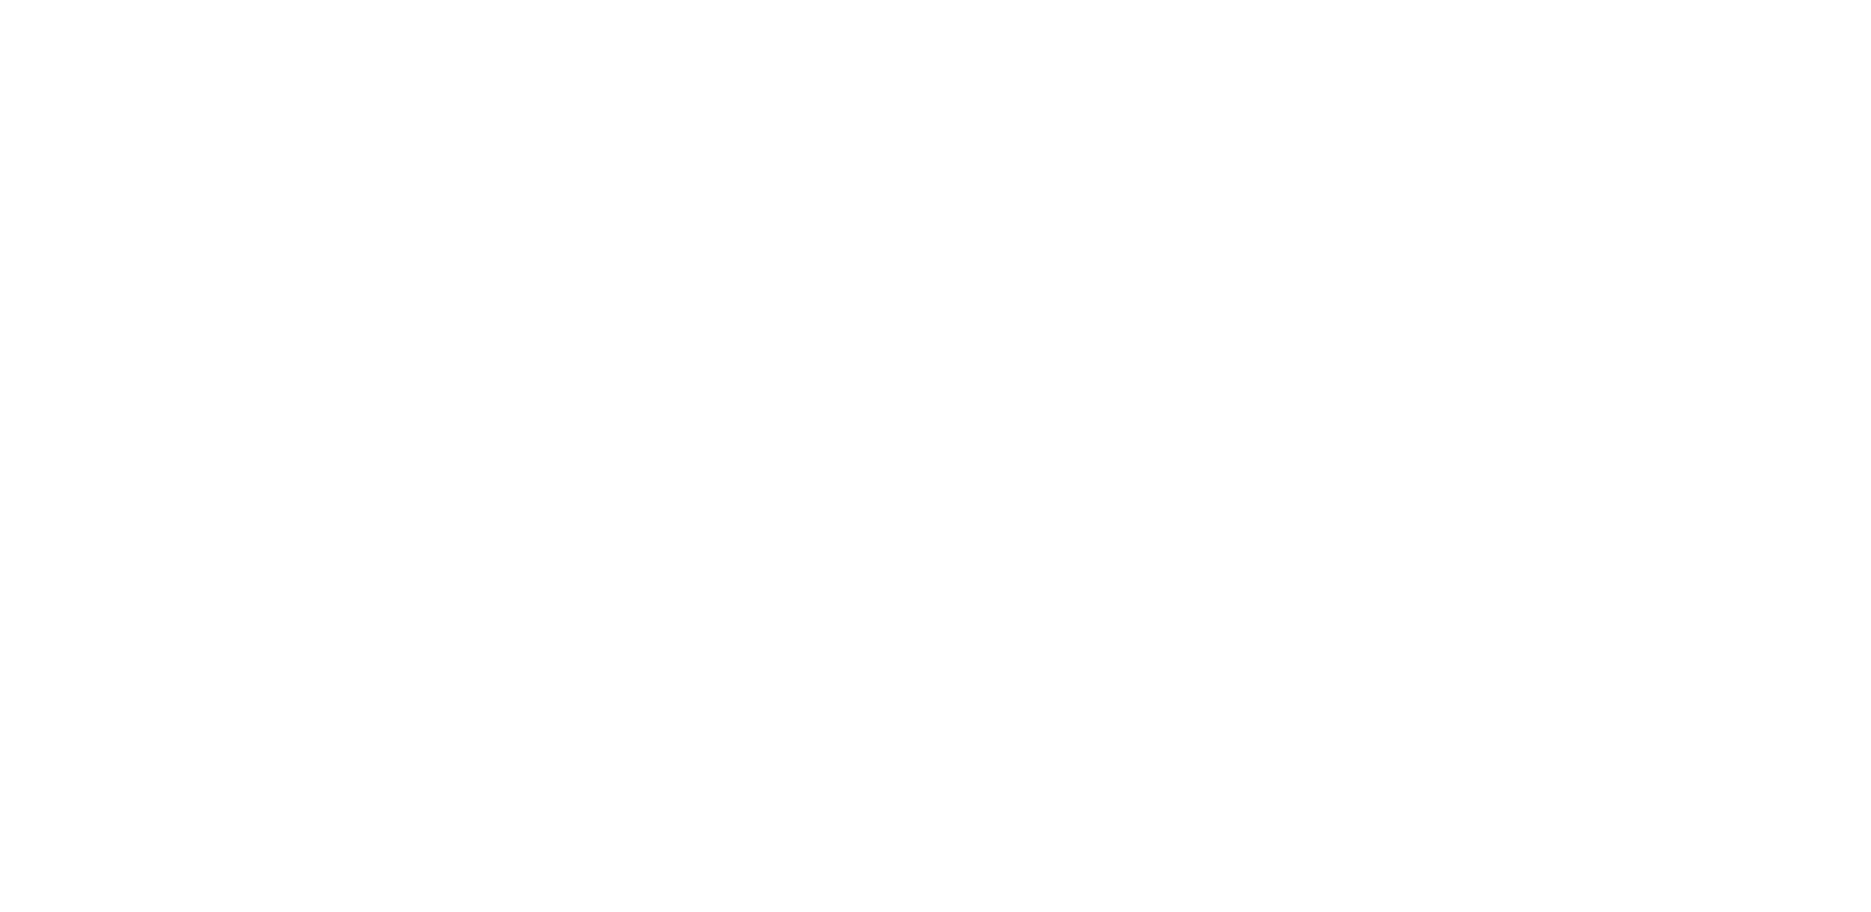 The Primary Health Network for Central Queensland, Wide Bay and Sunshine Coast